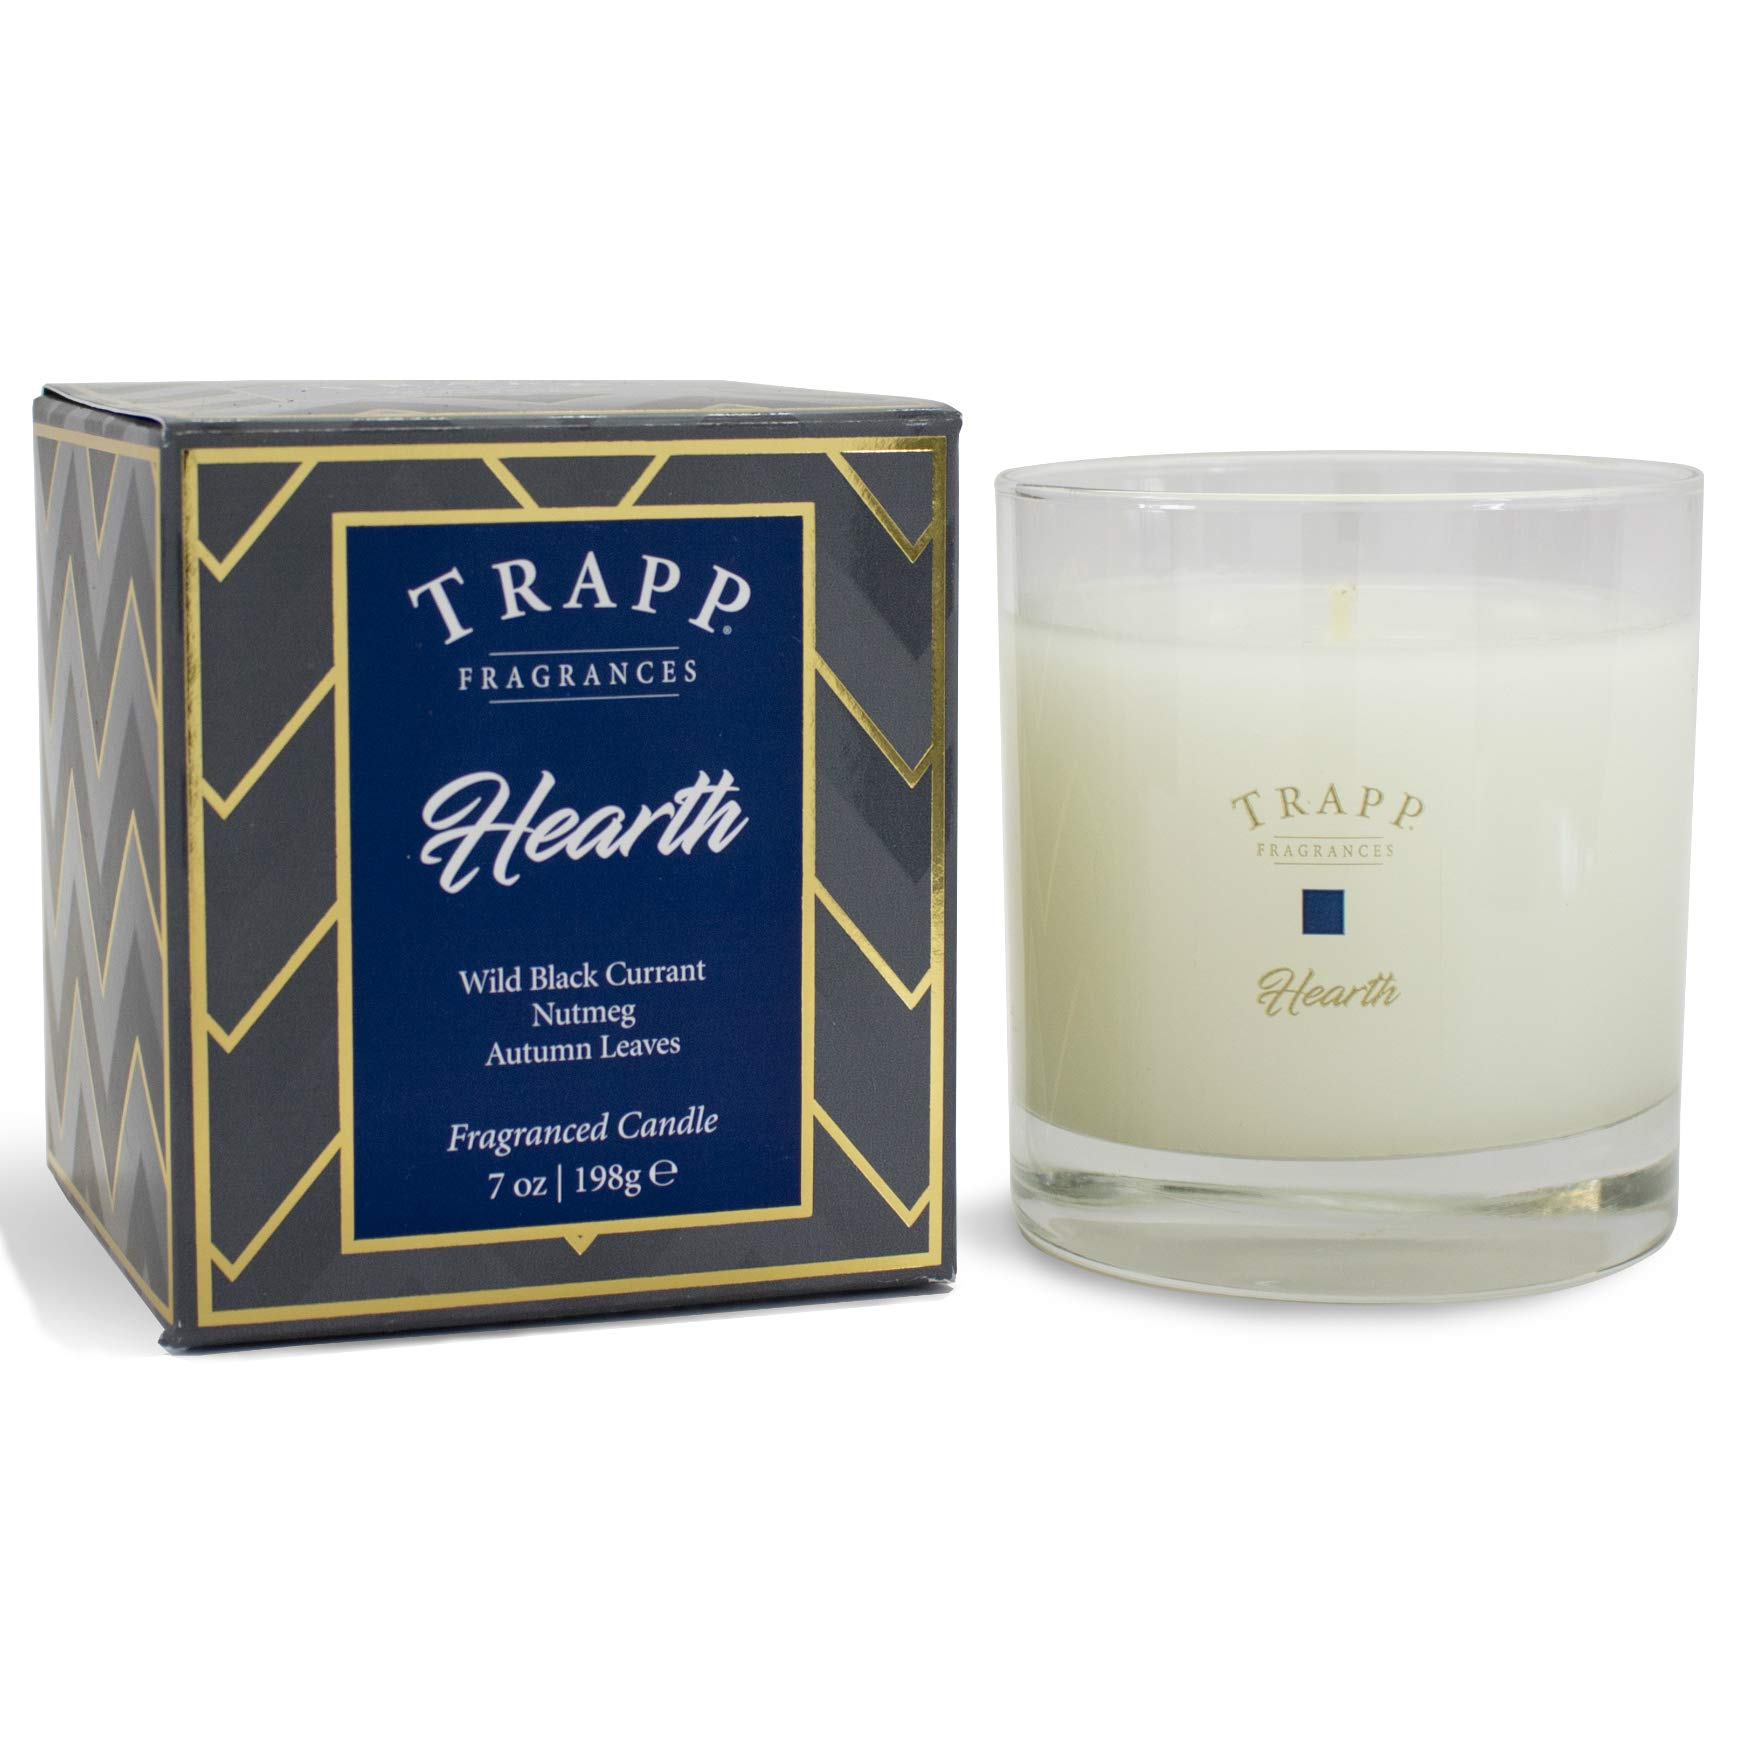 Trapp 7oz Limited Edition Seasonal Poured Scented Candle - No. 92 Hearth